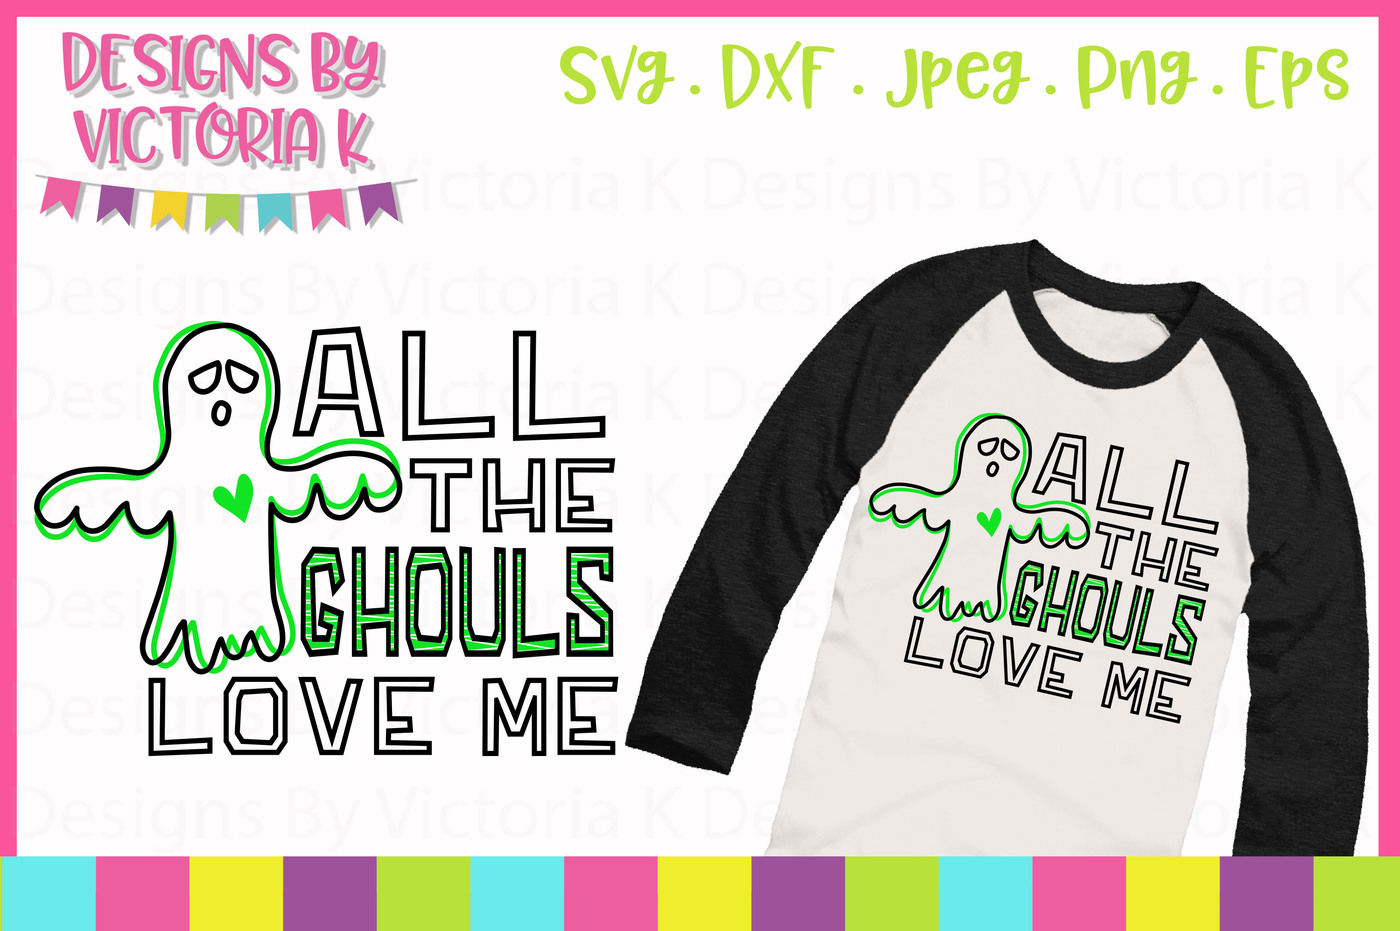 All The Ghouls Love Me Svg Dxf Eps Files Cricut Design Space